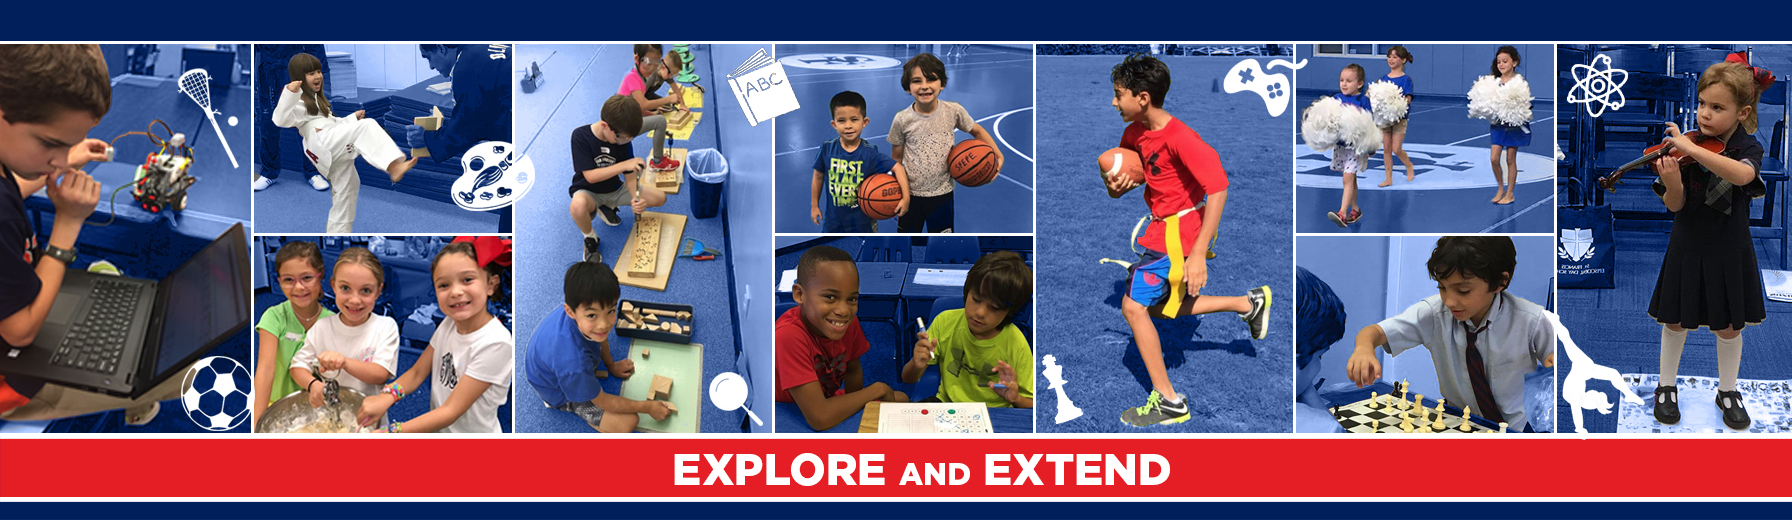 After School Programs | St. Francis Episcopal Private Religious School Houston